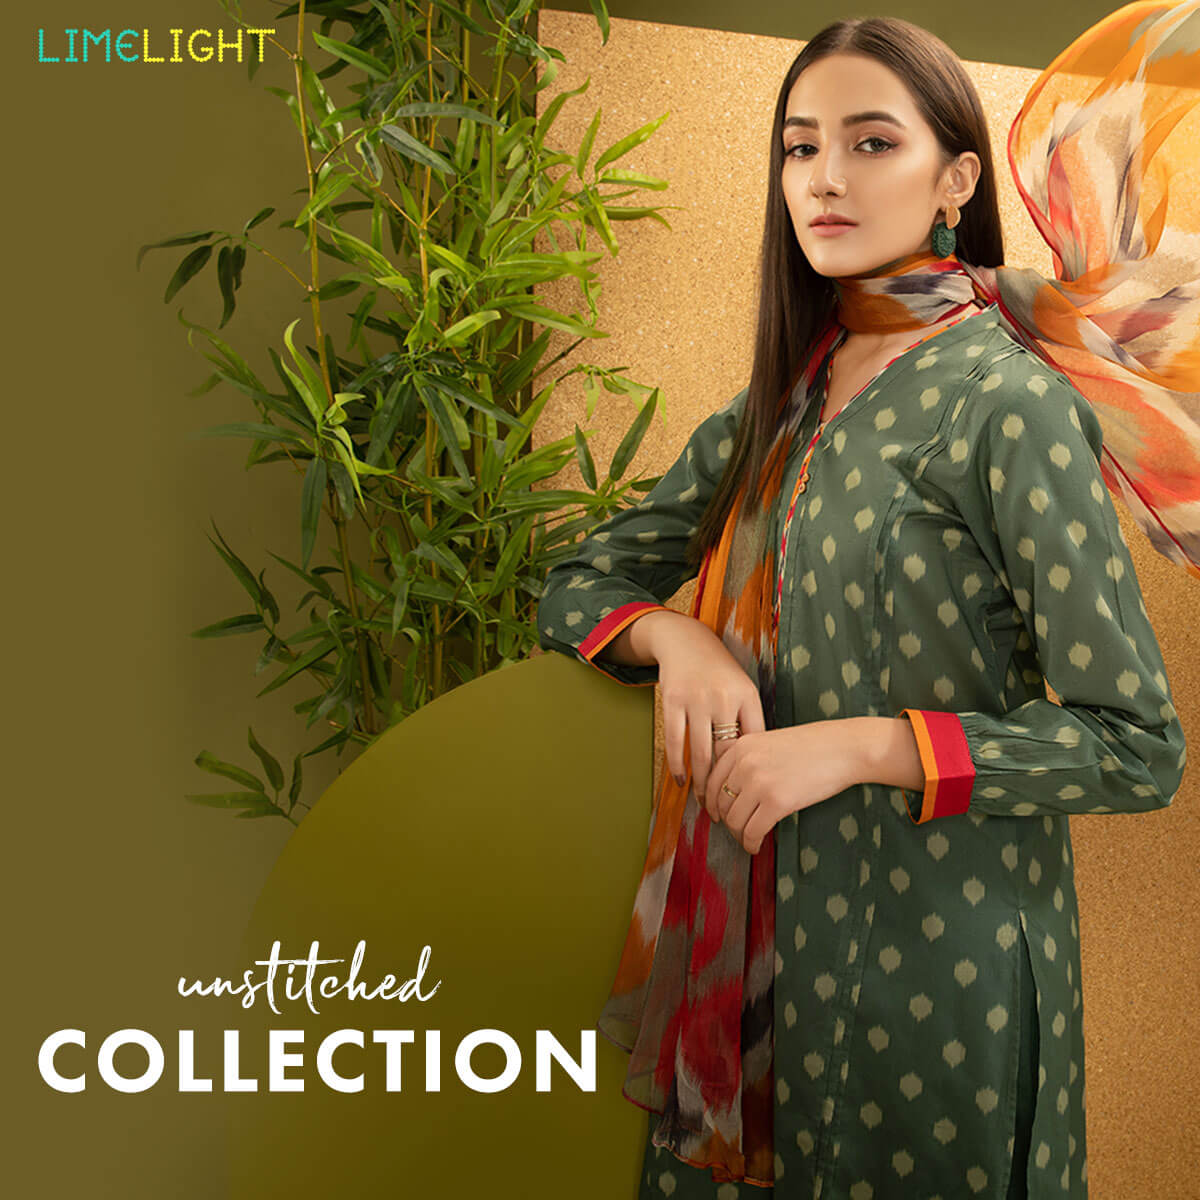 Explore The Exciting World of Limelight New Collection Online